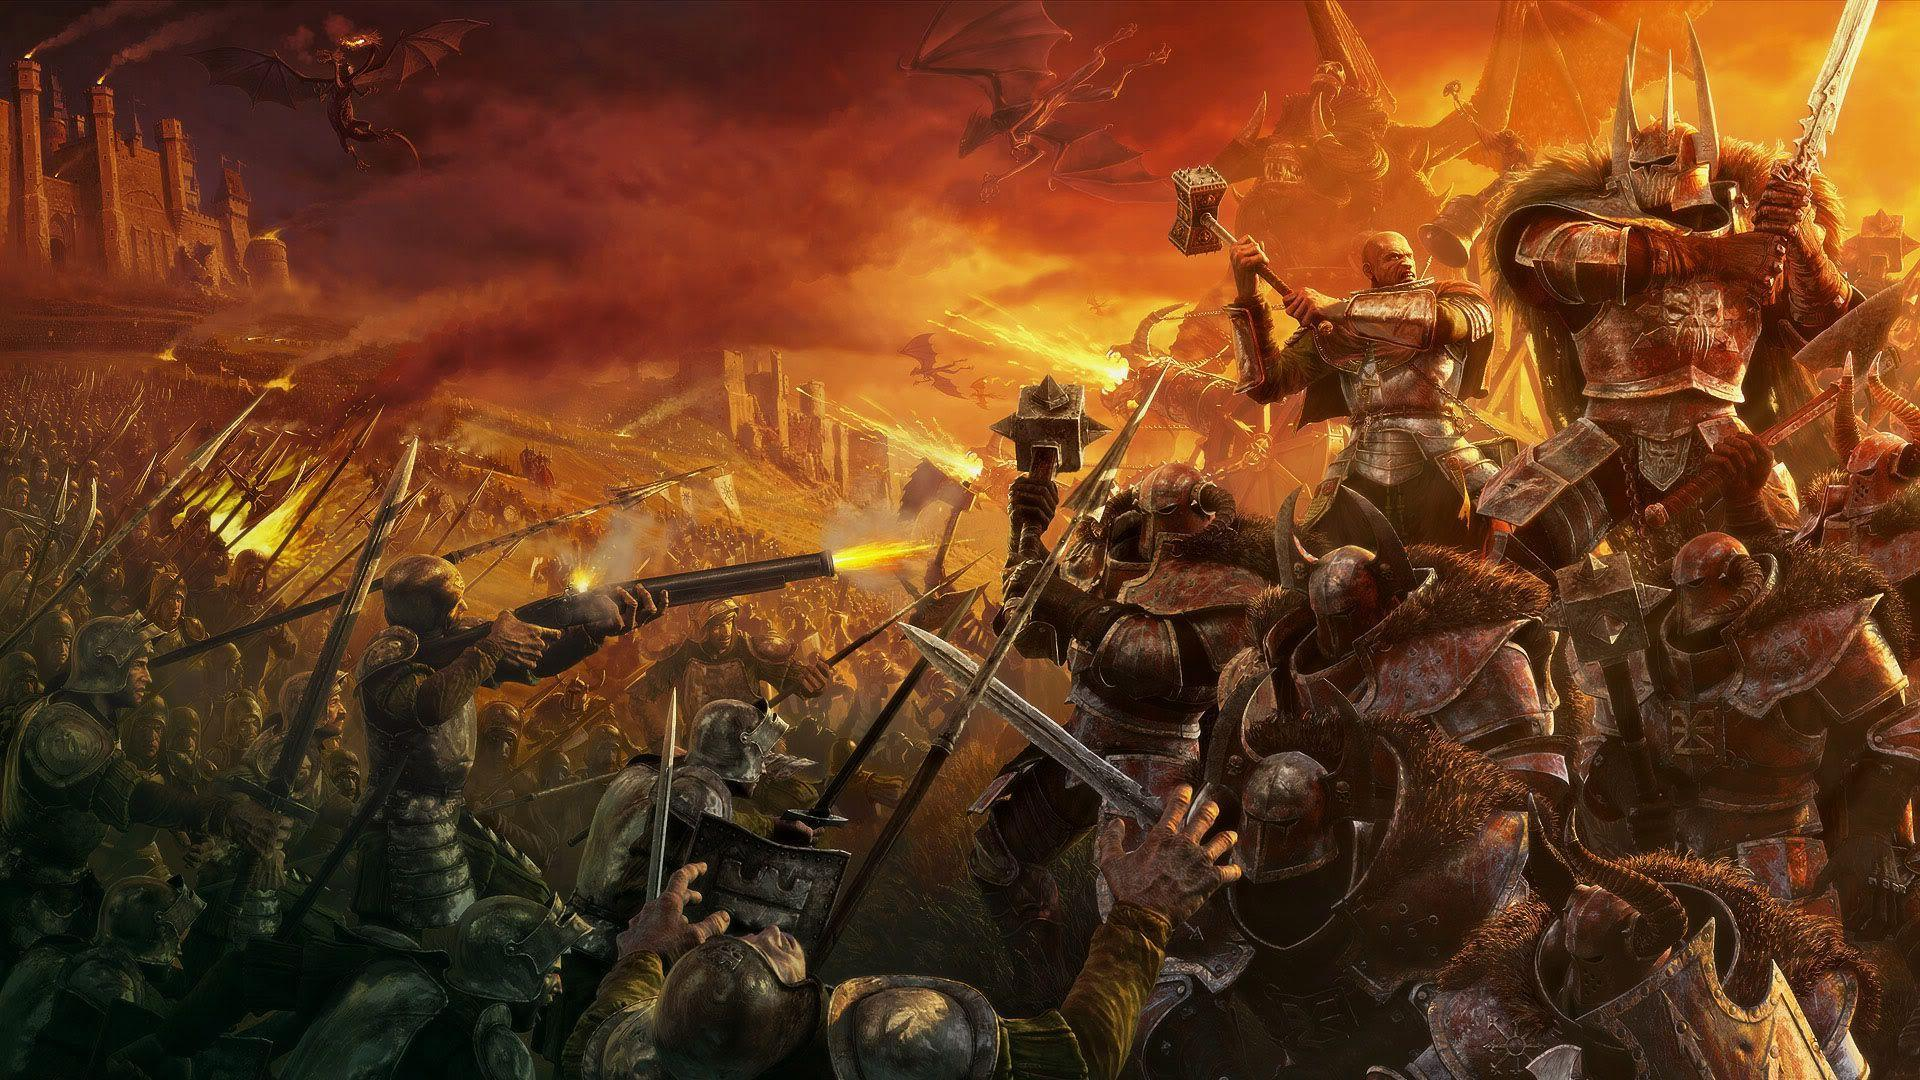 Age of Empires pictures and wallpaper for desktop - Wallpapers and ...